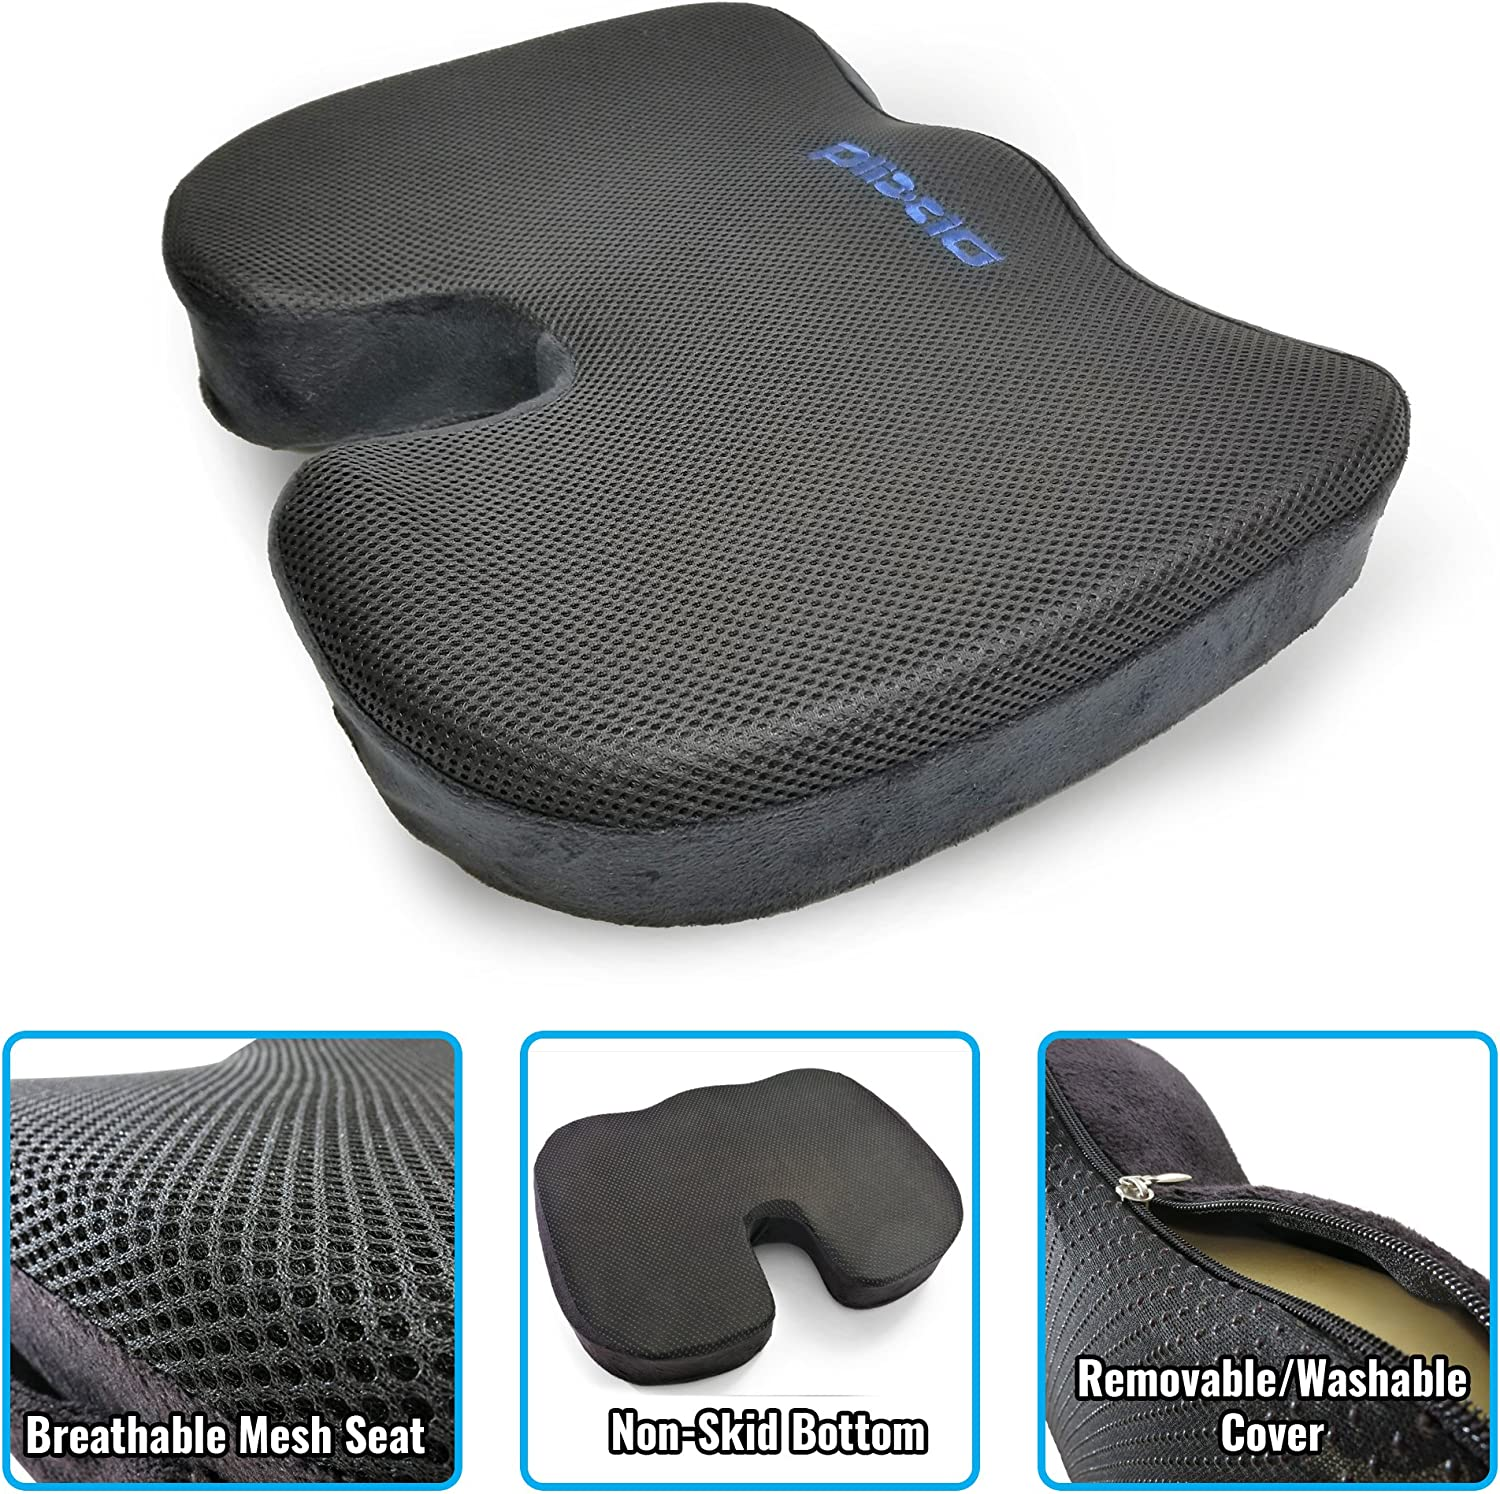 9171Ef0ntNL. AC SL1500 - What Is The Best Car Seat Cushion For Leg Pain? - ChairPicks